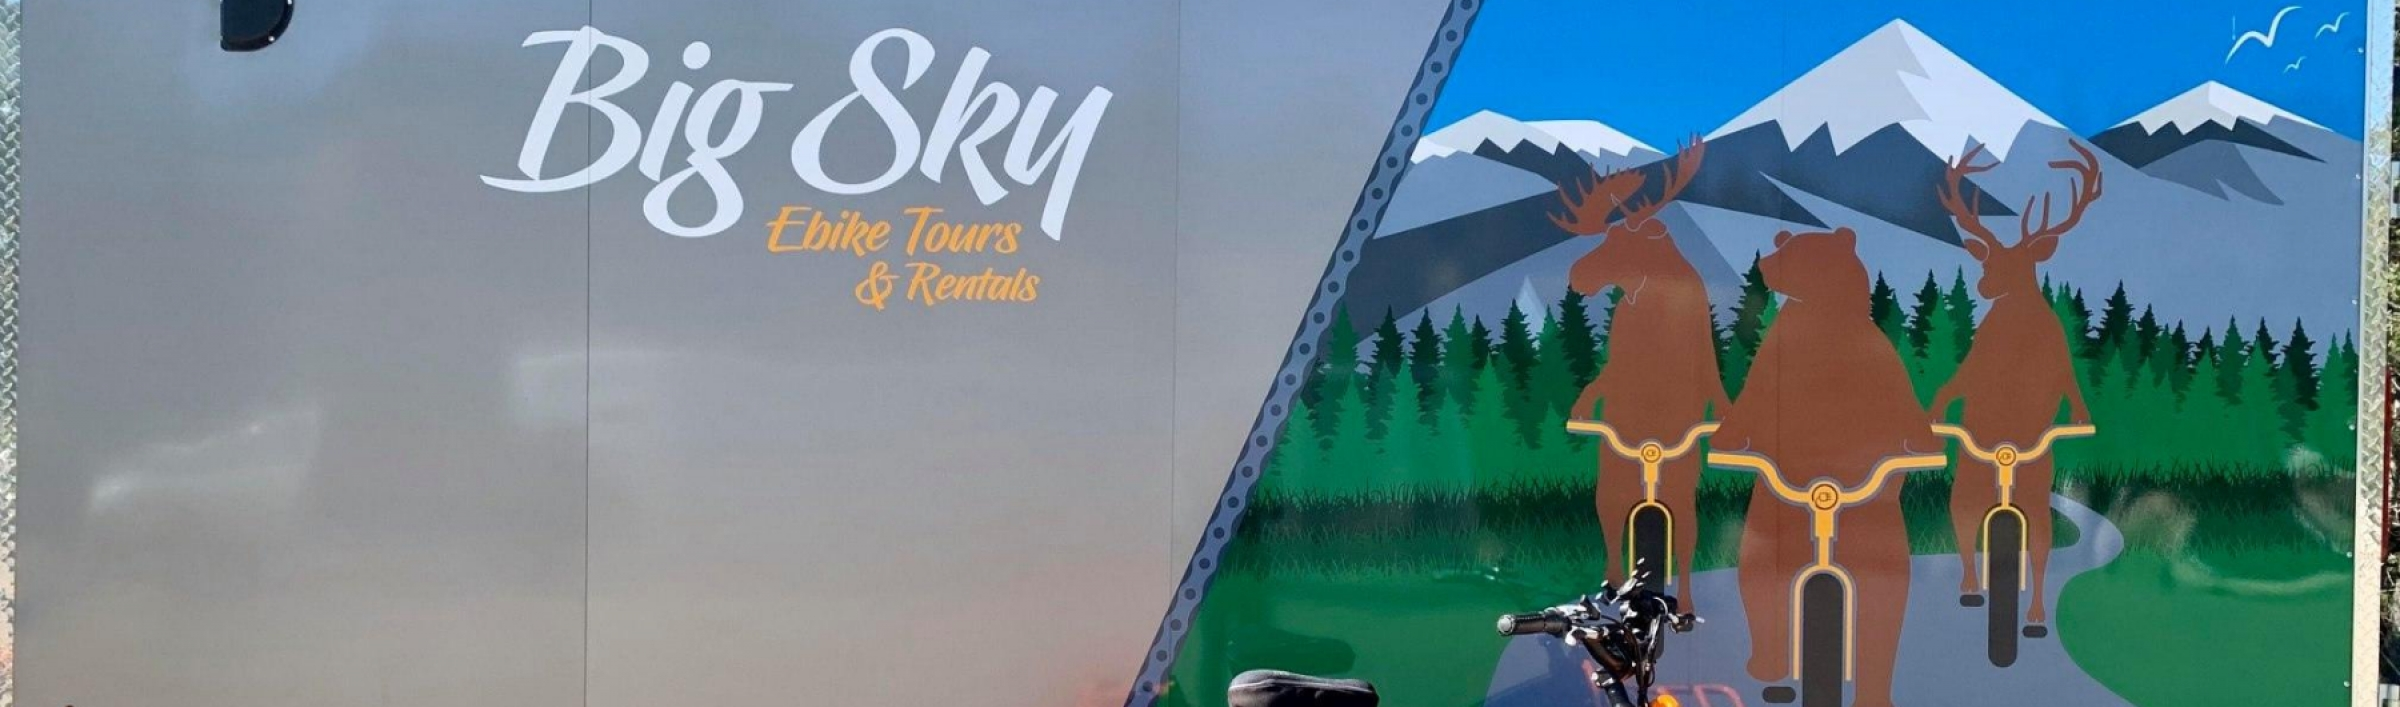 Big Sky E Bike Tours & Rentals